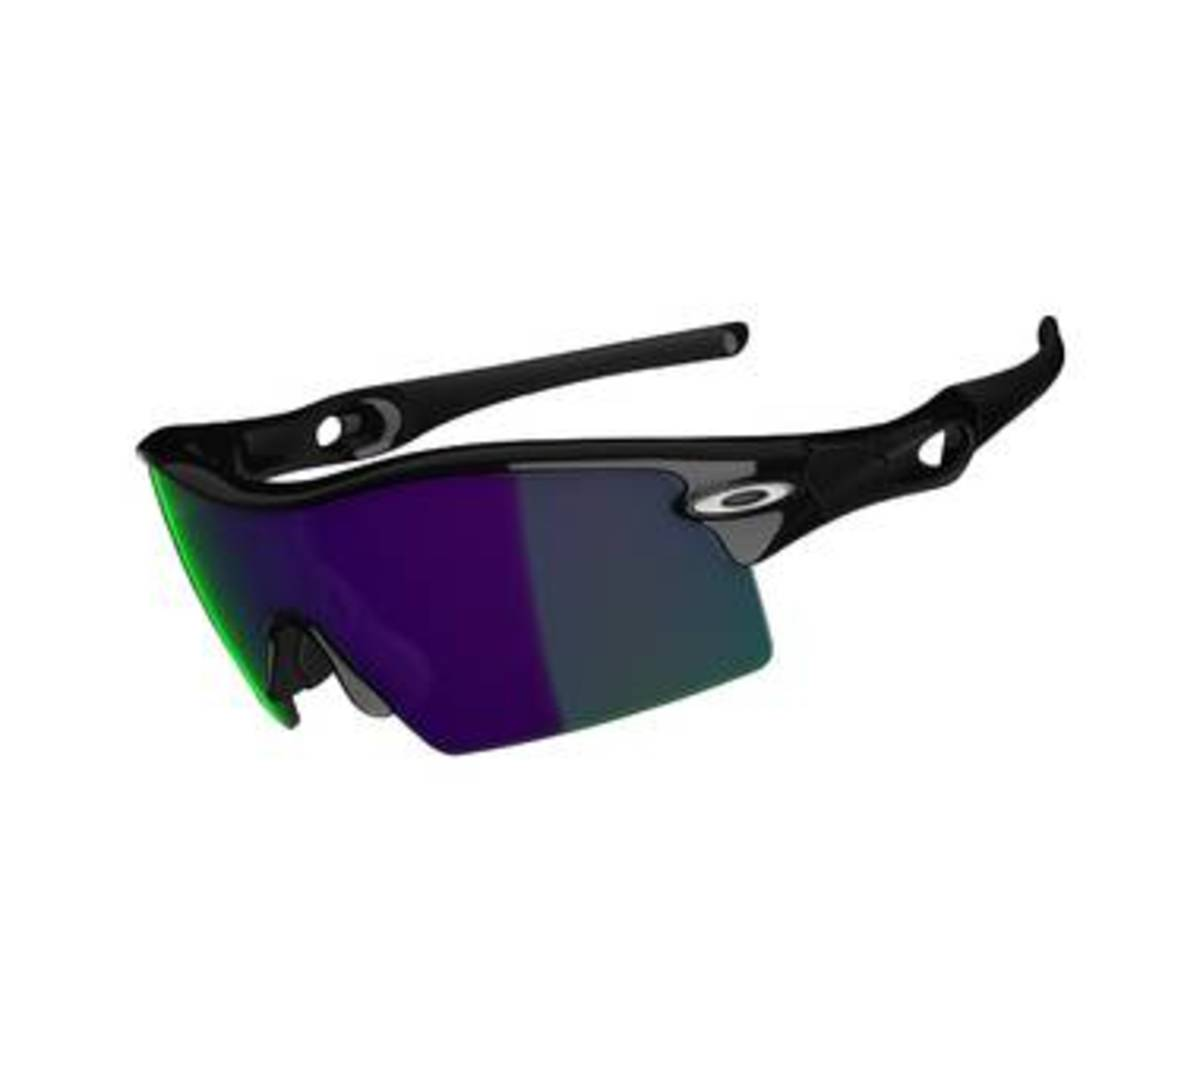 e9ee7f068eb How to tell if   Spot Fake or real Oakley Sunglasses   are fake ...